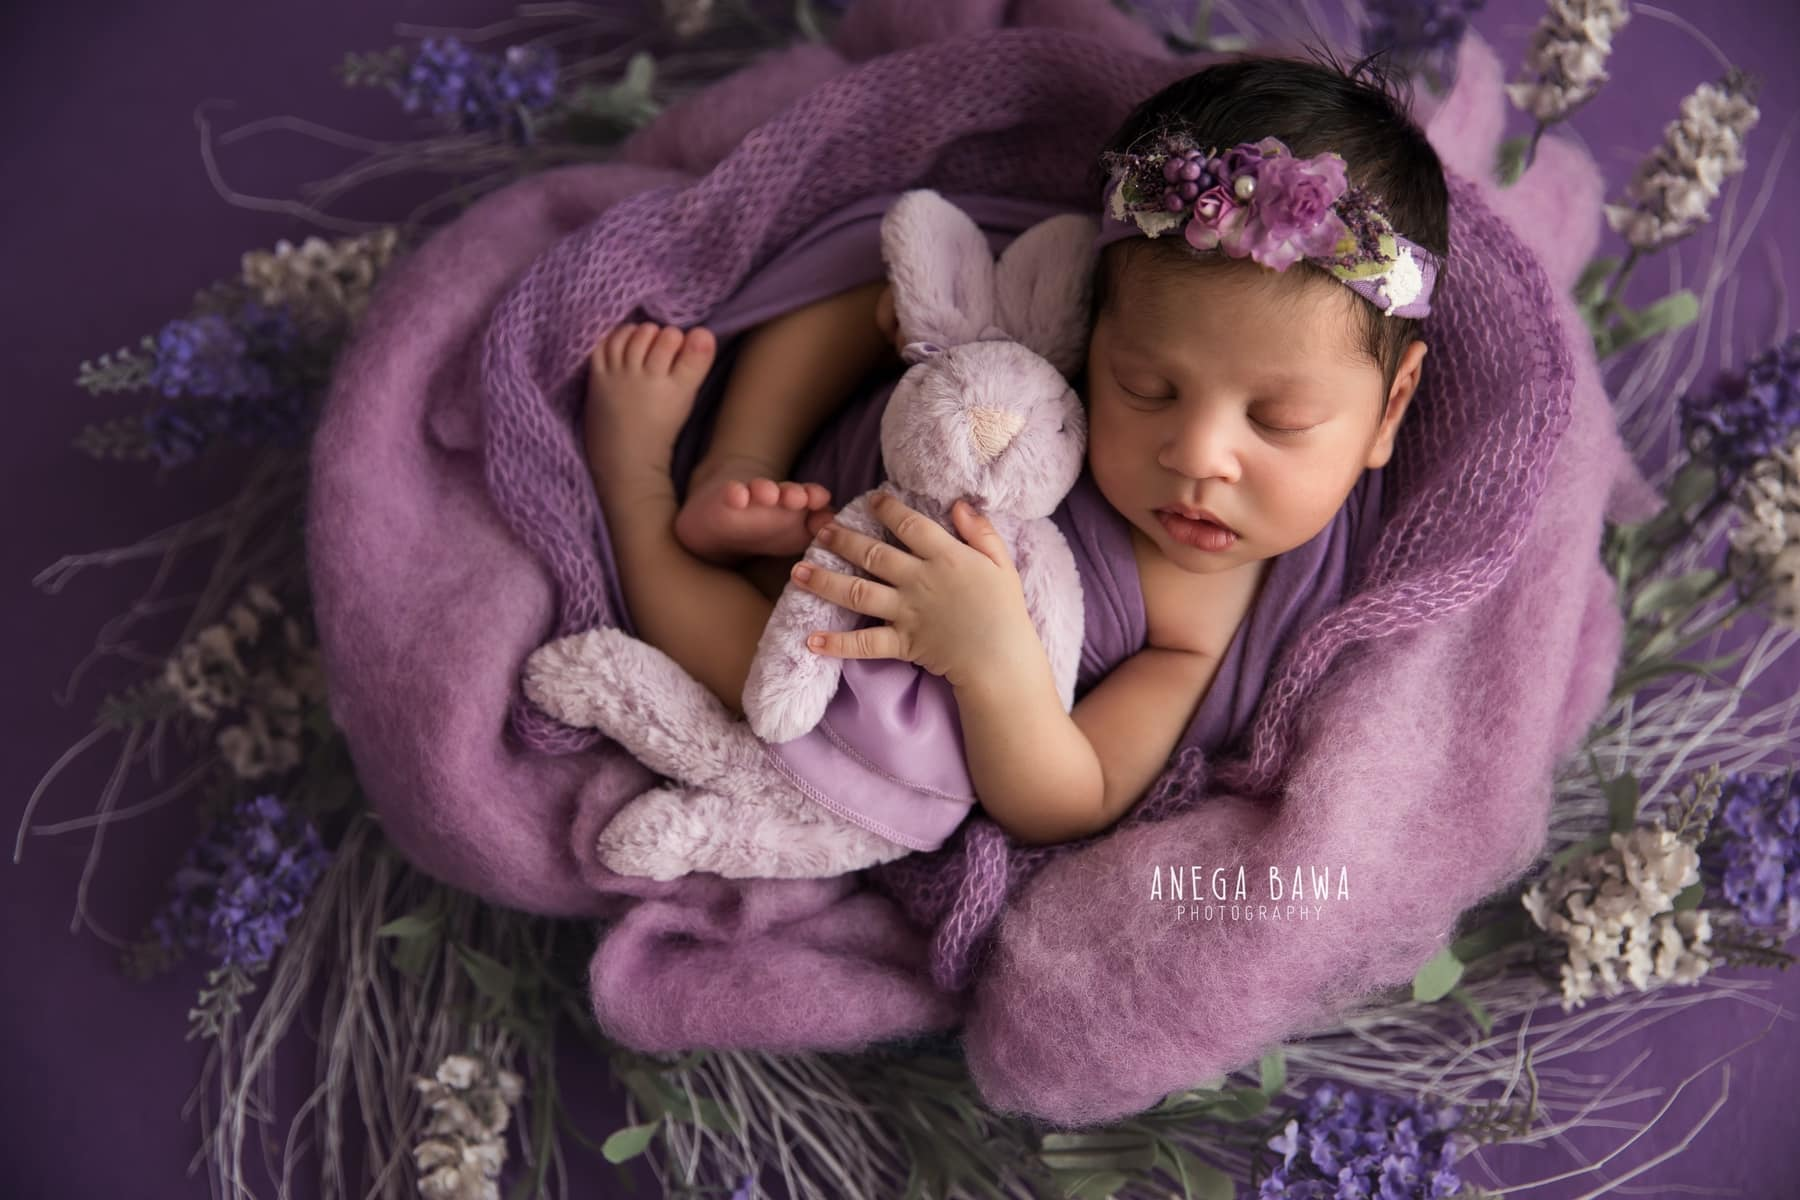 lavender bunny newborn photography delhi 14 days baby girl photoshoot gurgaon anega bawa